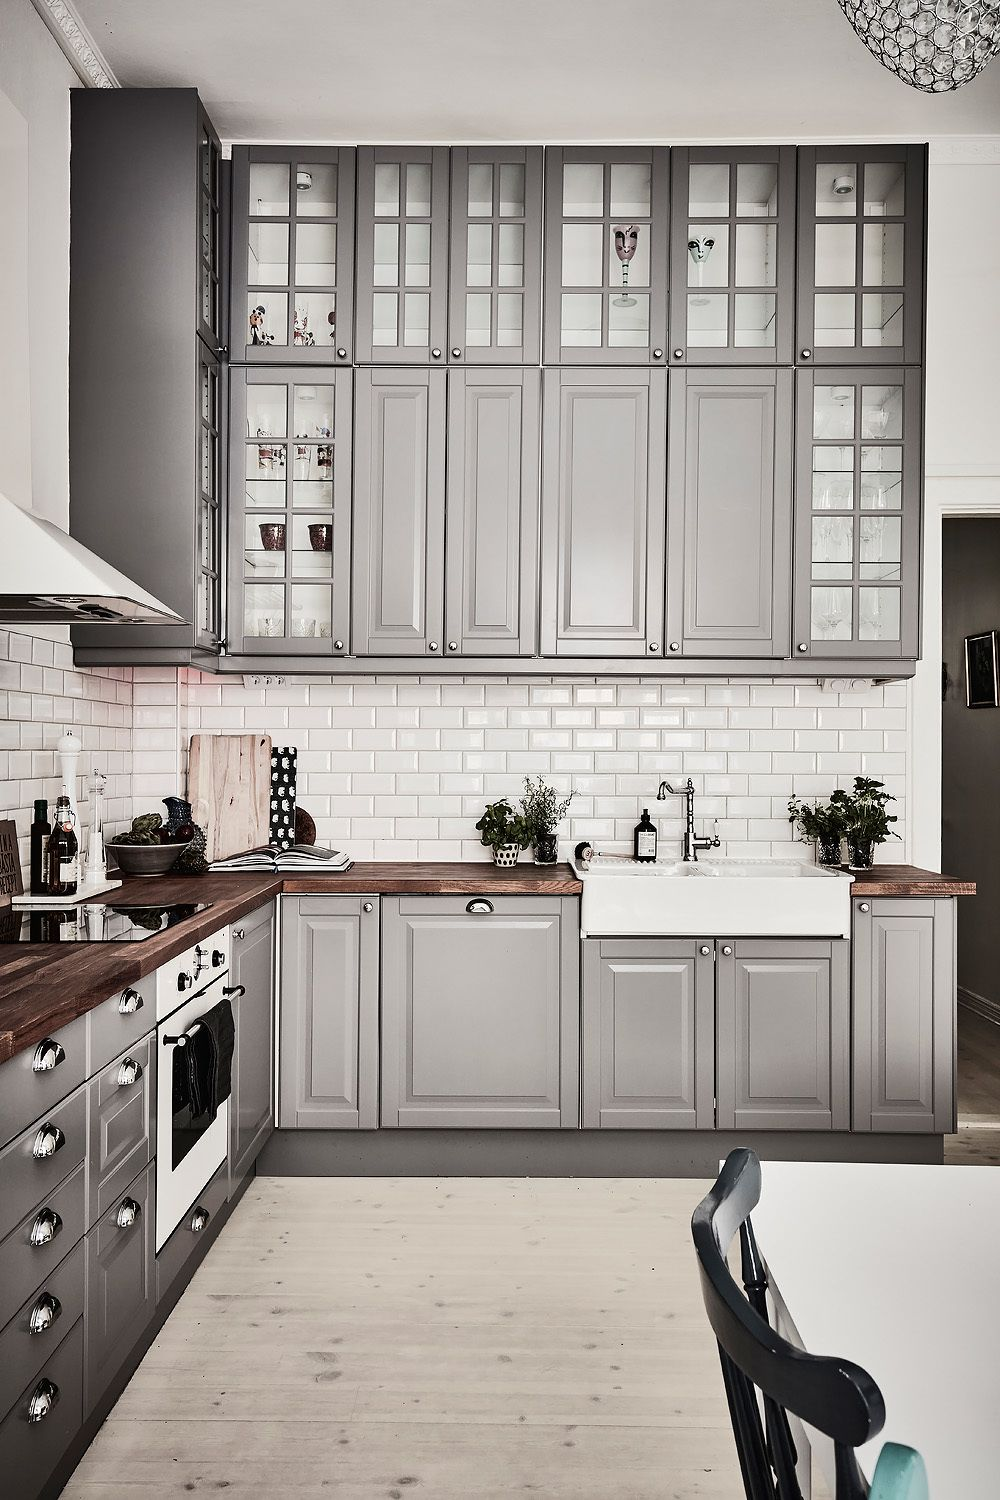 Inspiring kitchens you wont believe are ikea